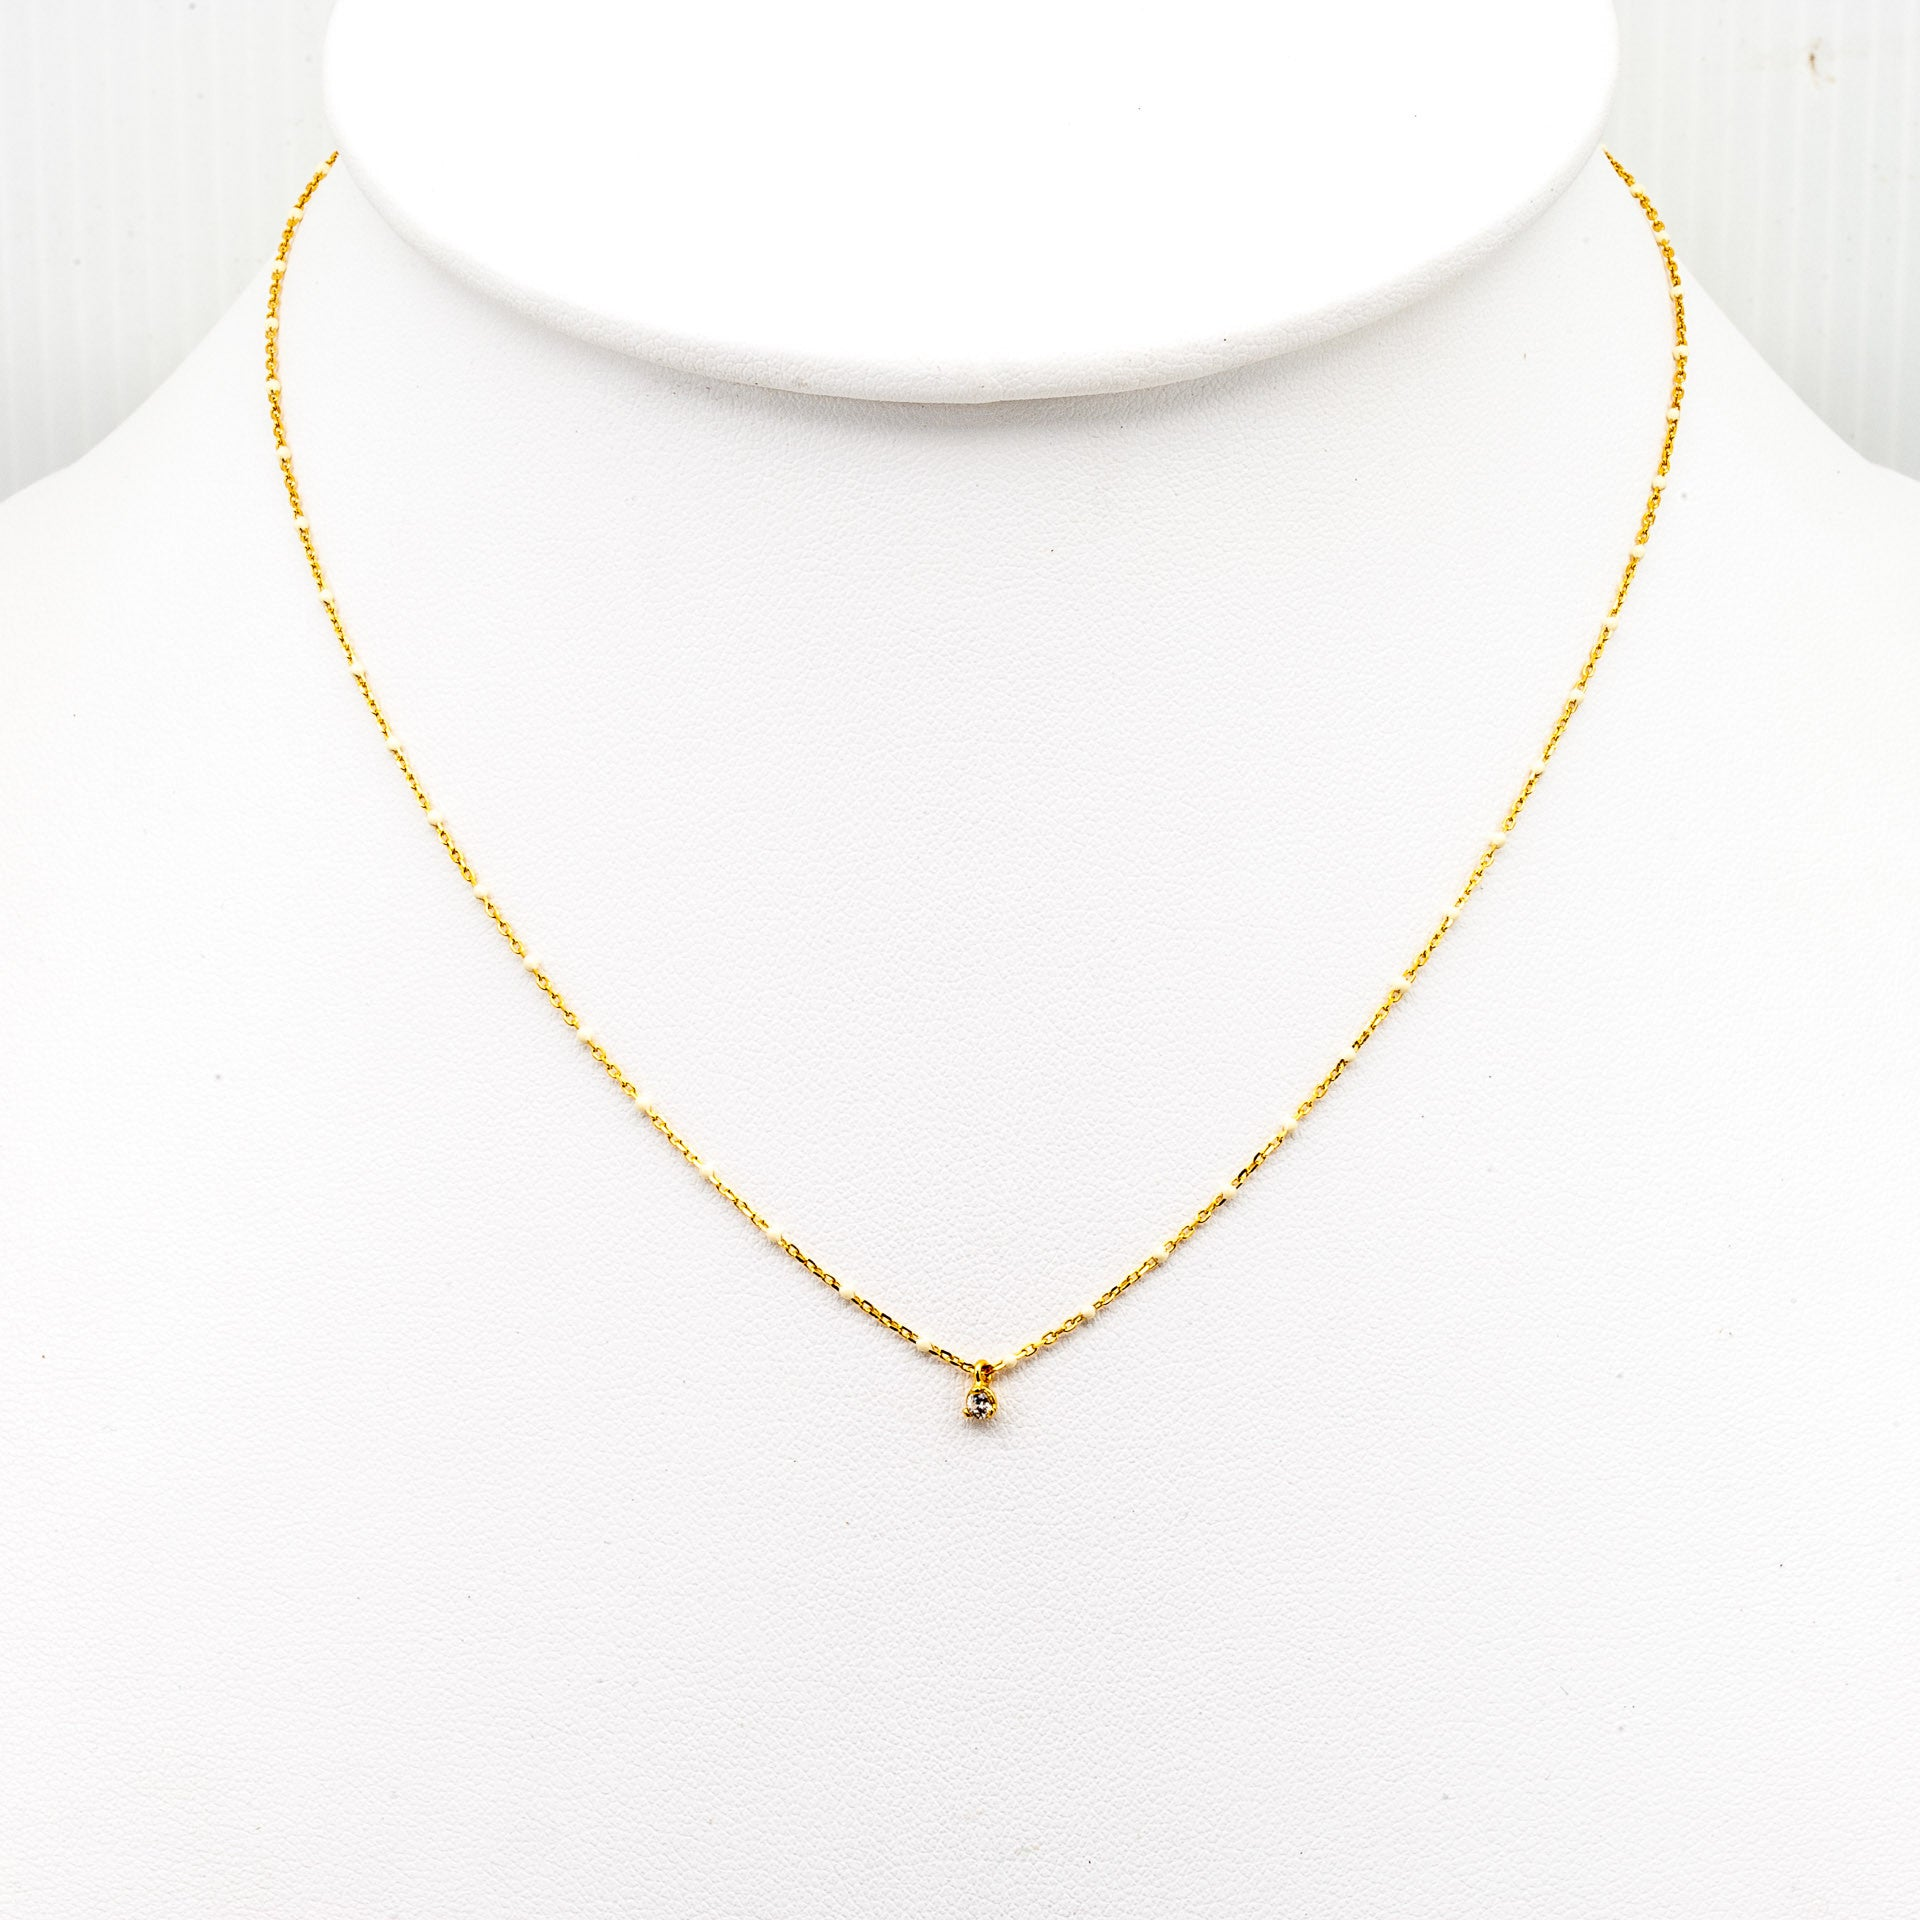 GOLD VERMEIL ENAMEL NECKLACE WITH MULTIPLE CZ/WHITE STONES